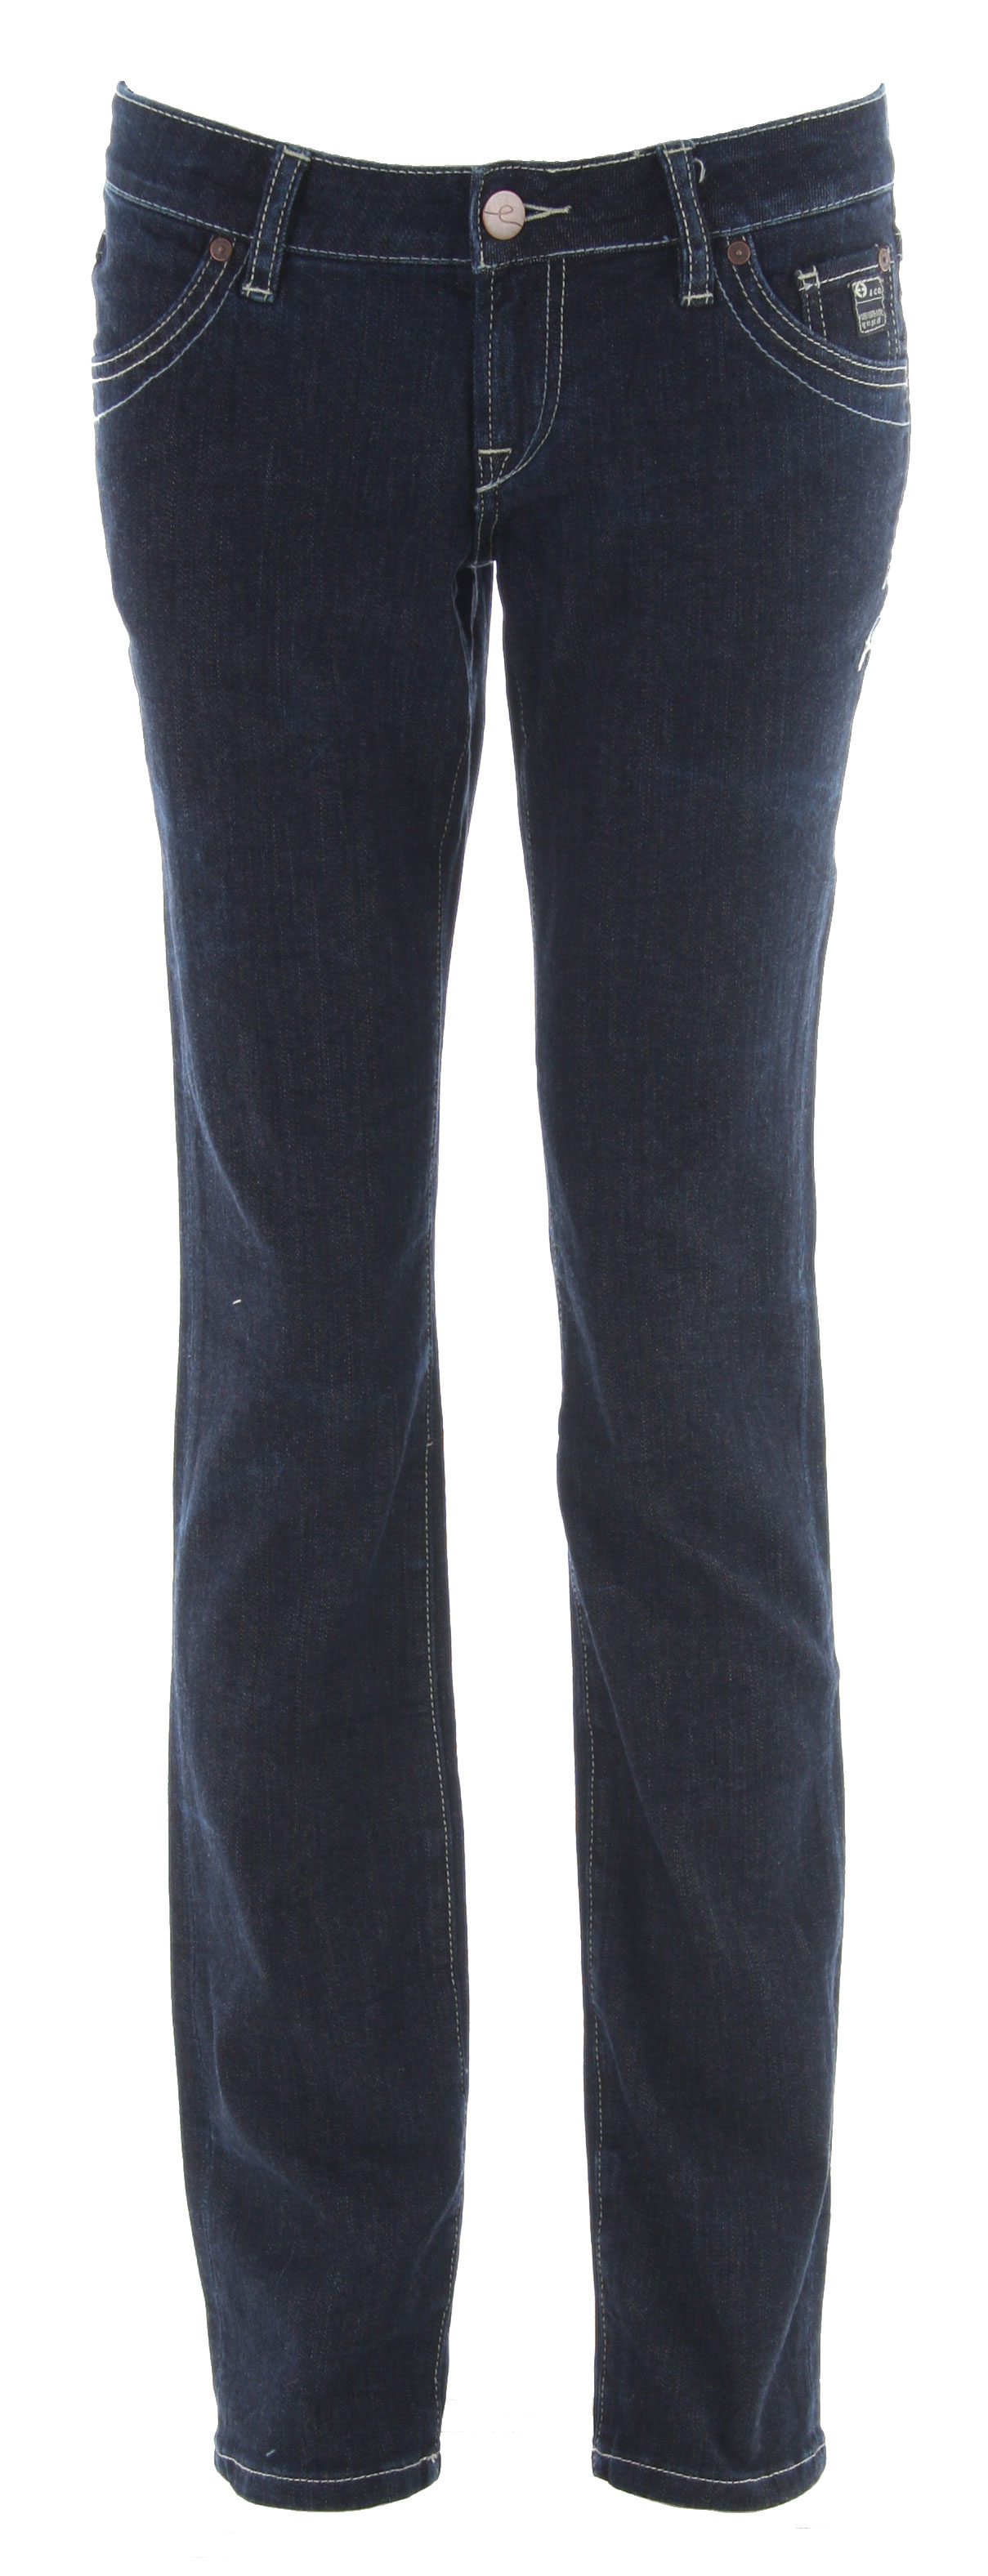 Planet Earth Skinny Cut Rinse Wash Jean Indigo - $23.95